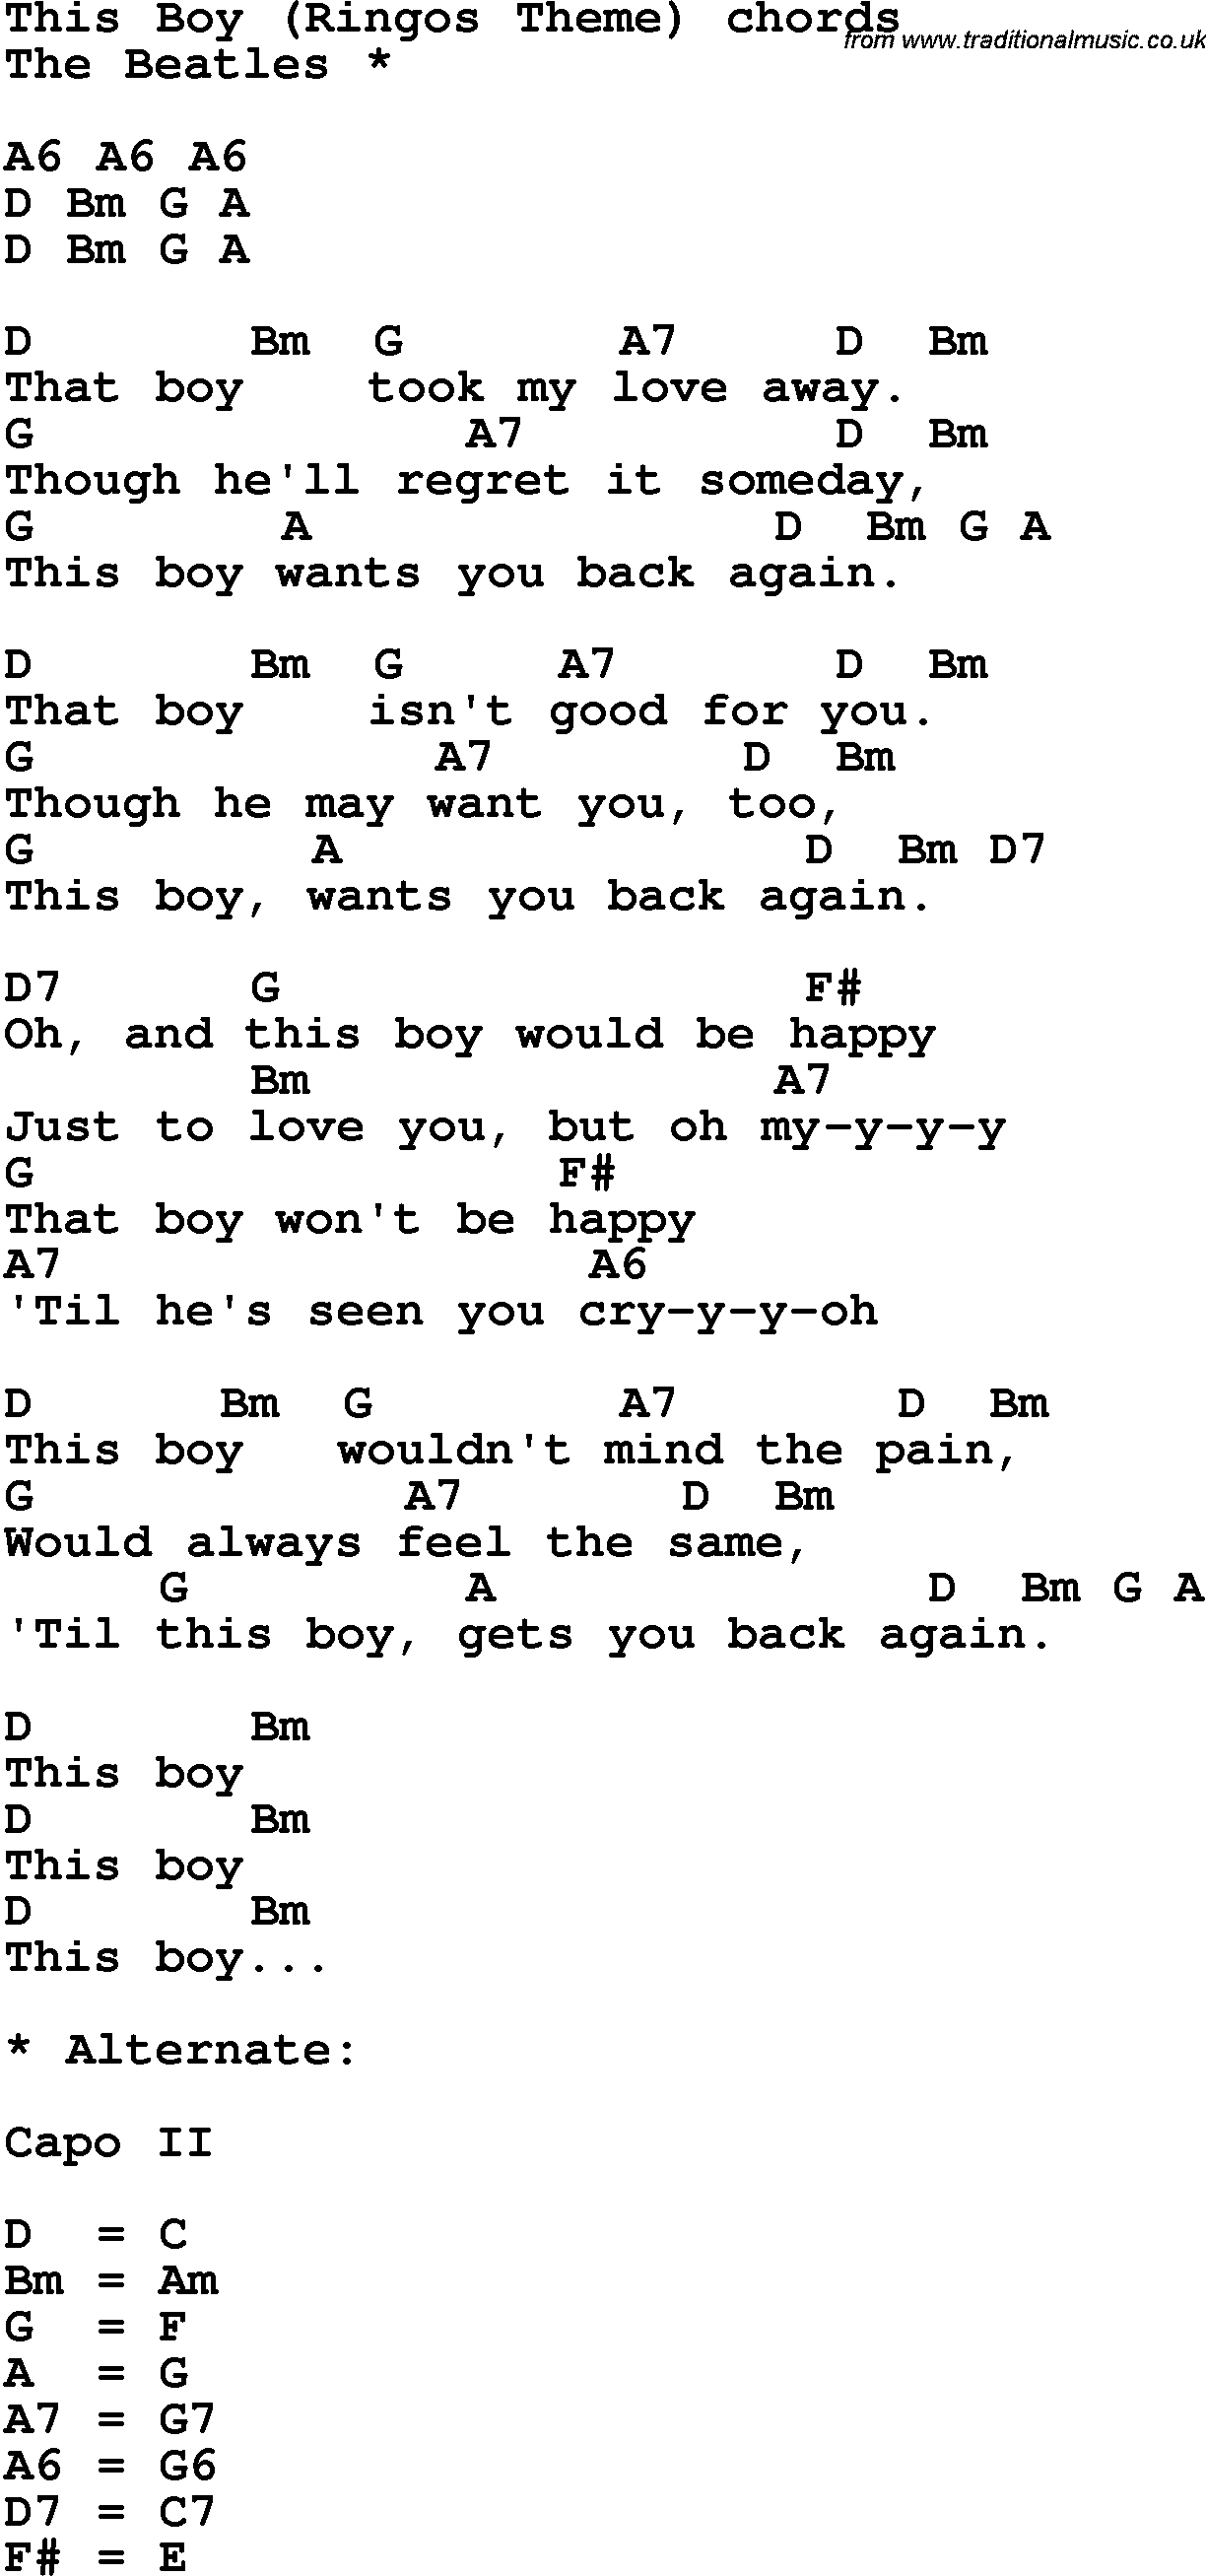 Song lyrics with guitar chords for this boy the beatles song lyrics with guitar chords for this boy the beatles hexwebz Images